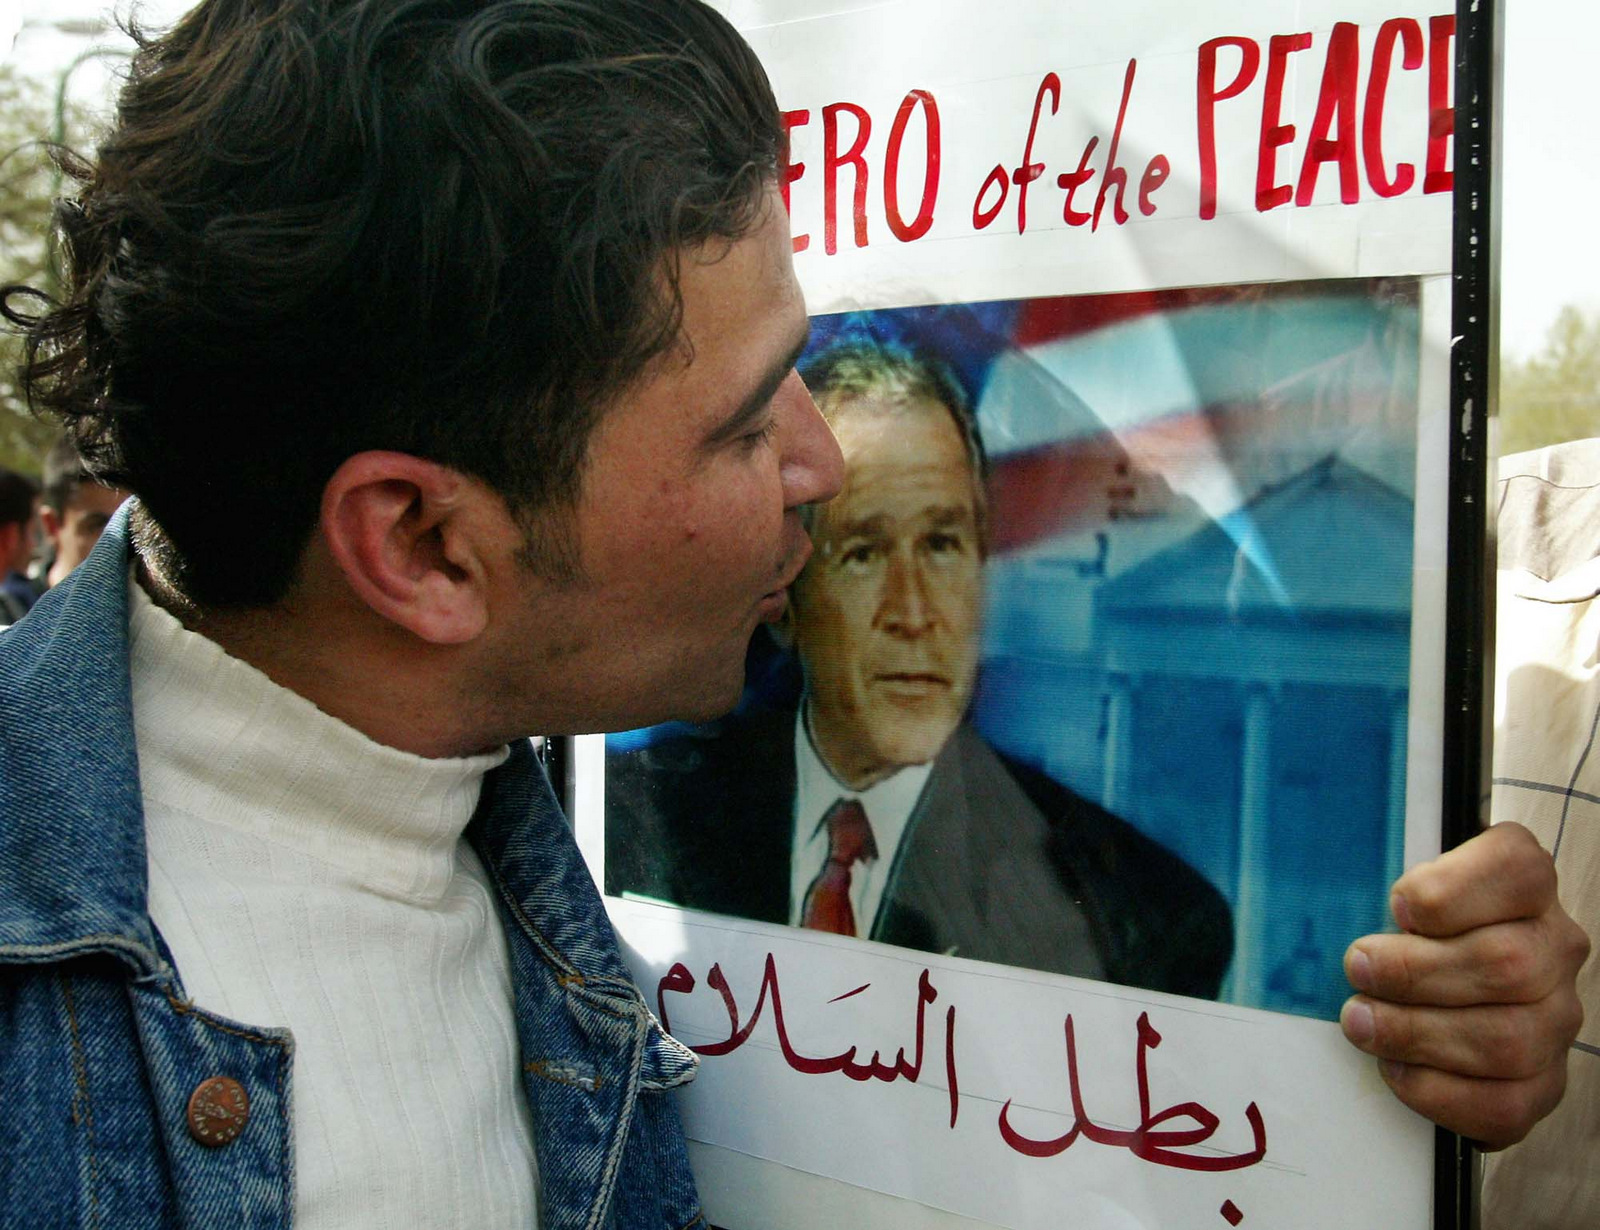 A Kurd kisses a picture of United States President George W. Bush during celebrations in the streets of Sulaymaniyah, northern Iraq Wednesday April 9, 2003. (AP/Kevin Frayer)